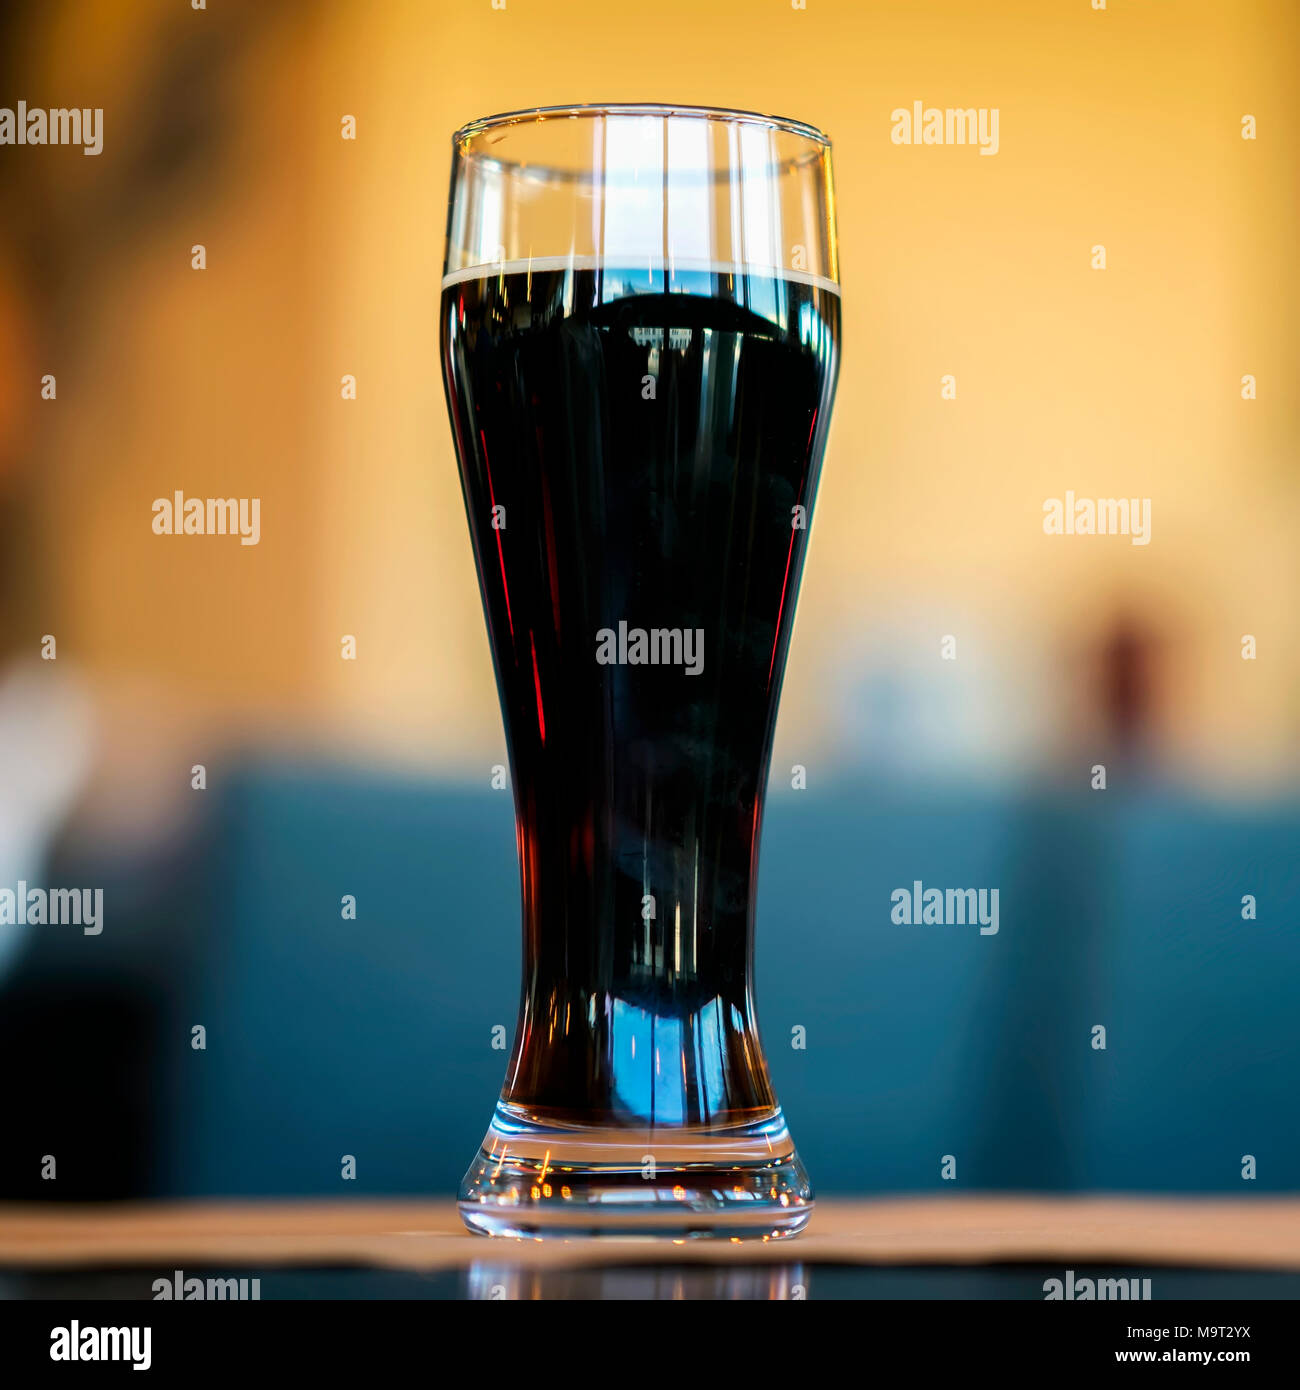 Glass of dark beer in bar or in pub close up. Real scene. Concept of beer culture, Craft brewery, festivals and meetings low-alcohol beverage lovers - Stock Image